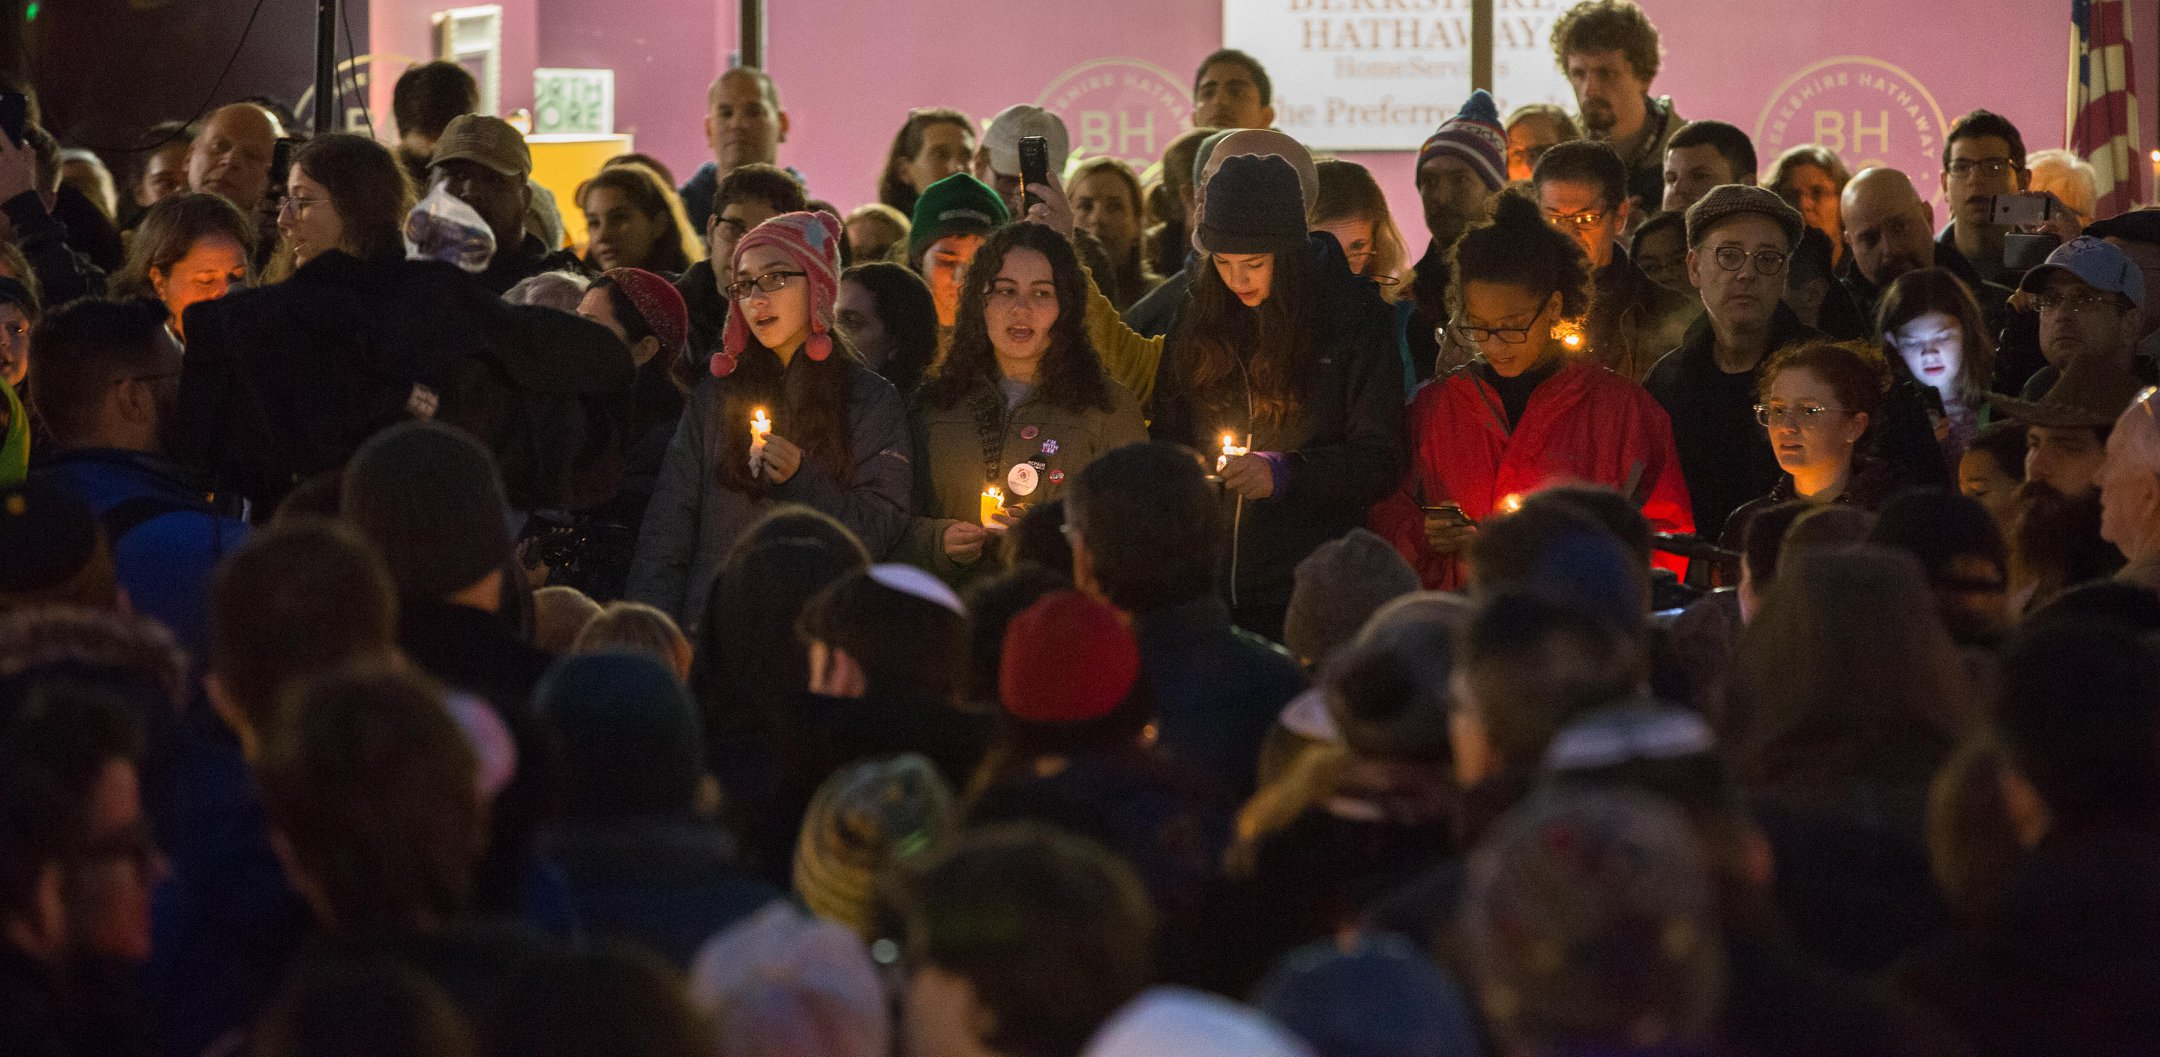 Hundreds of people attended a vigil organized by Taylor Allderdice High School students on Forbes and Murray Avenue Saturday night. (Photo by Heather Mull for PublicSource)